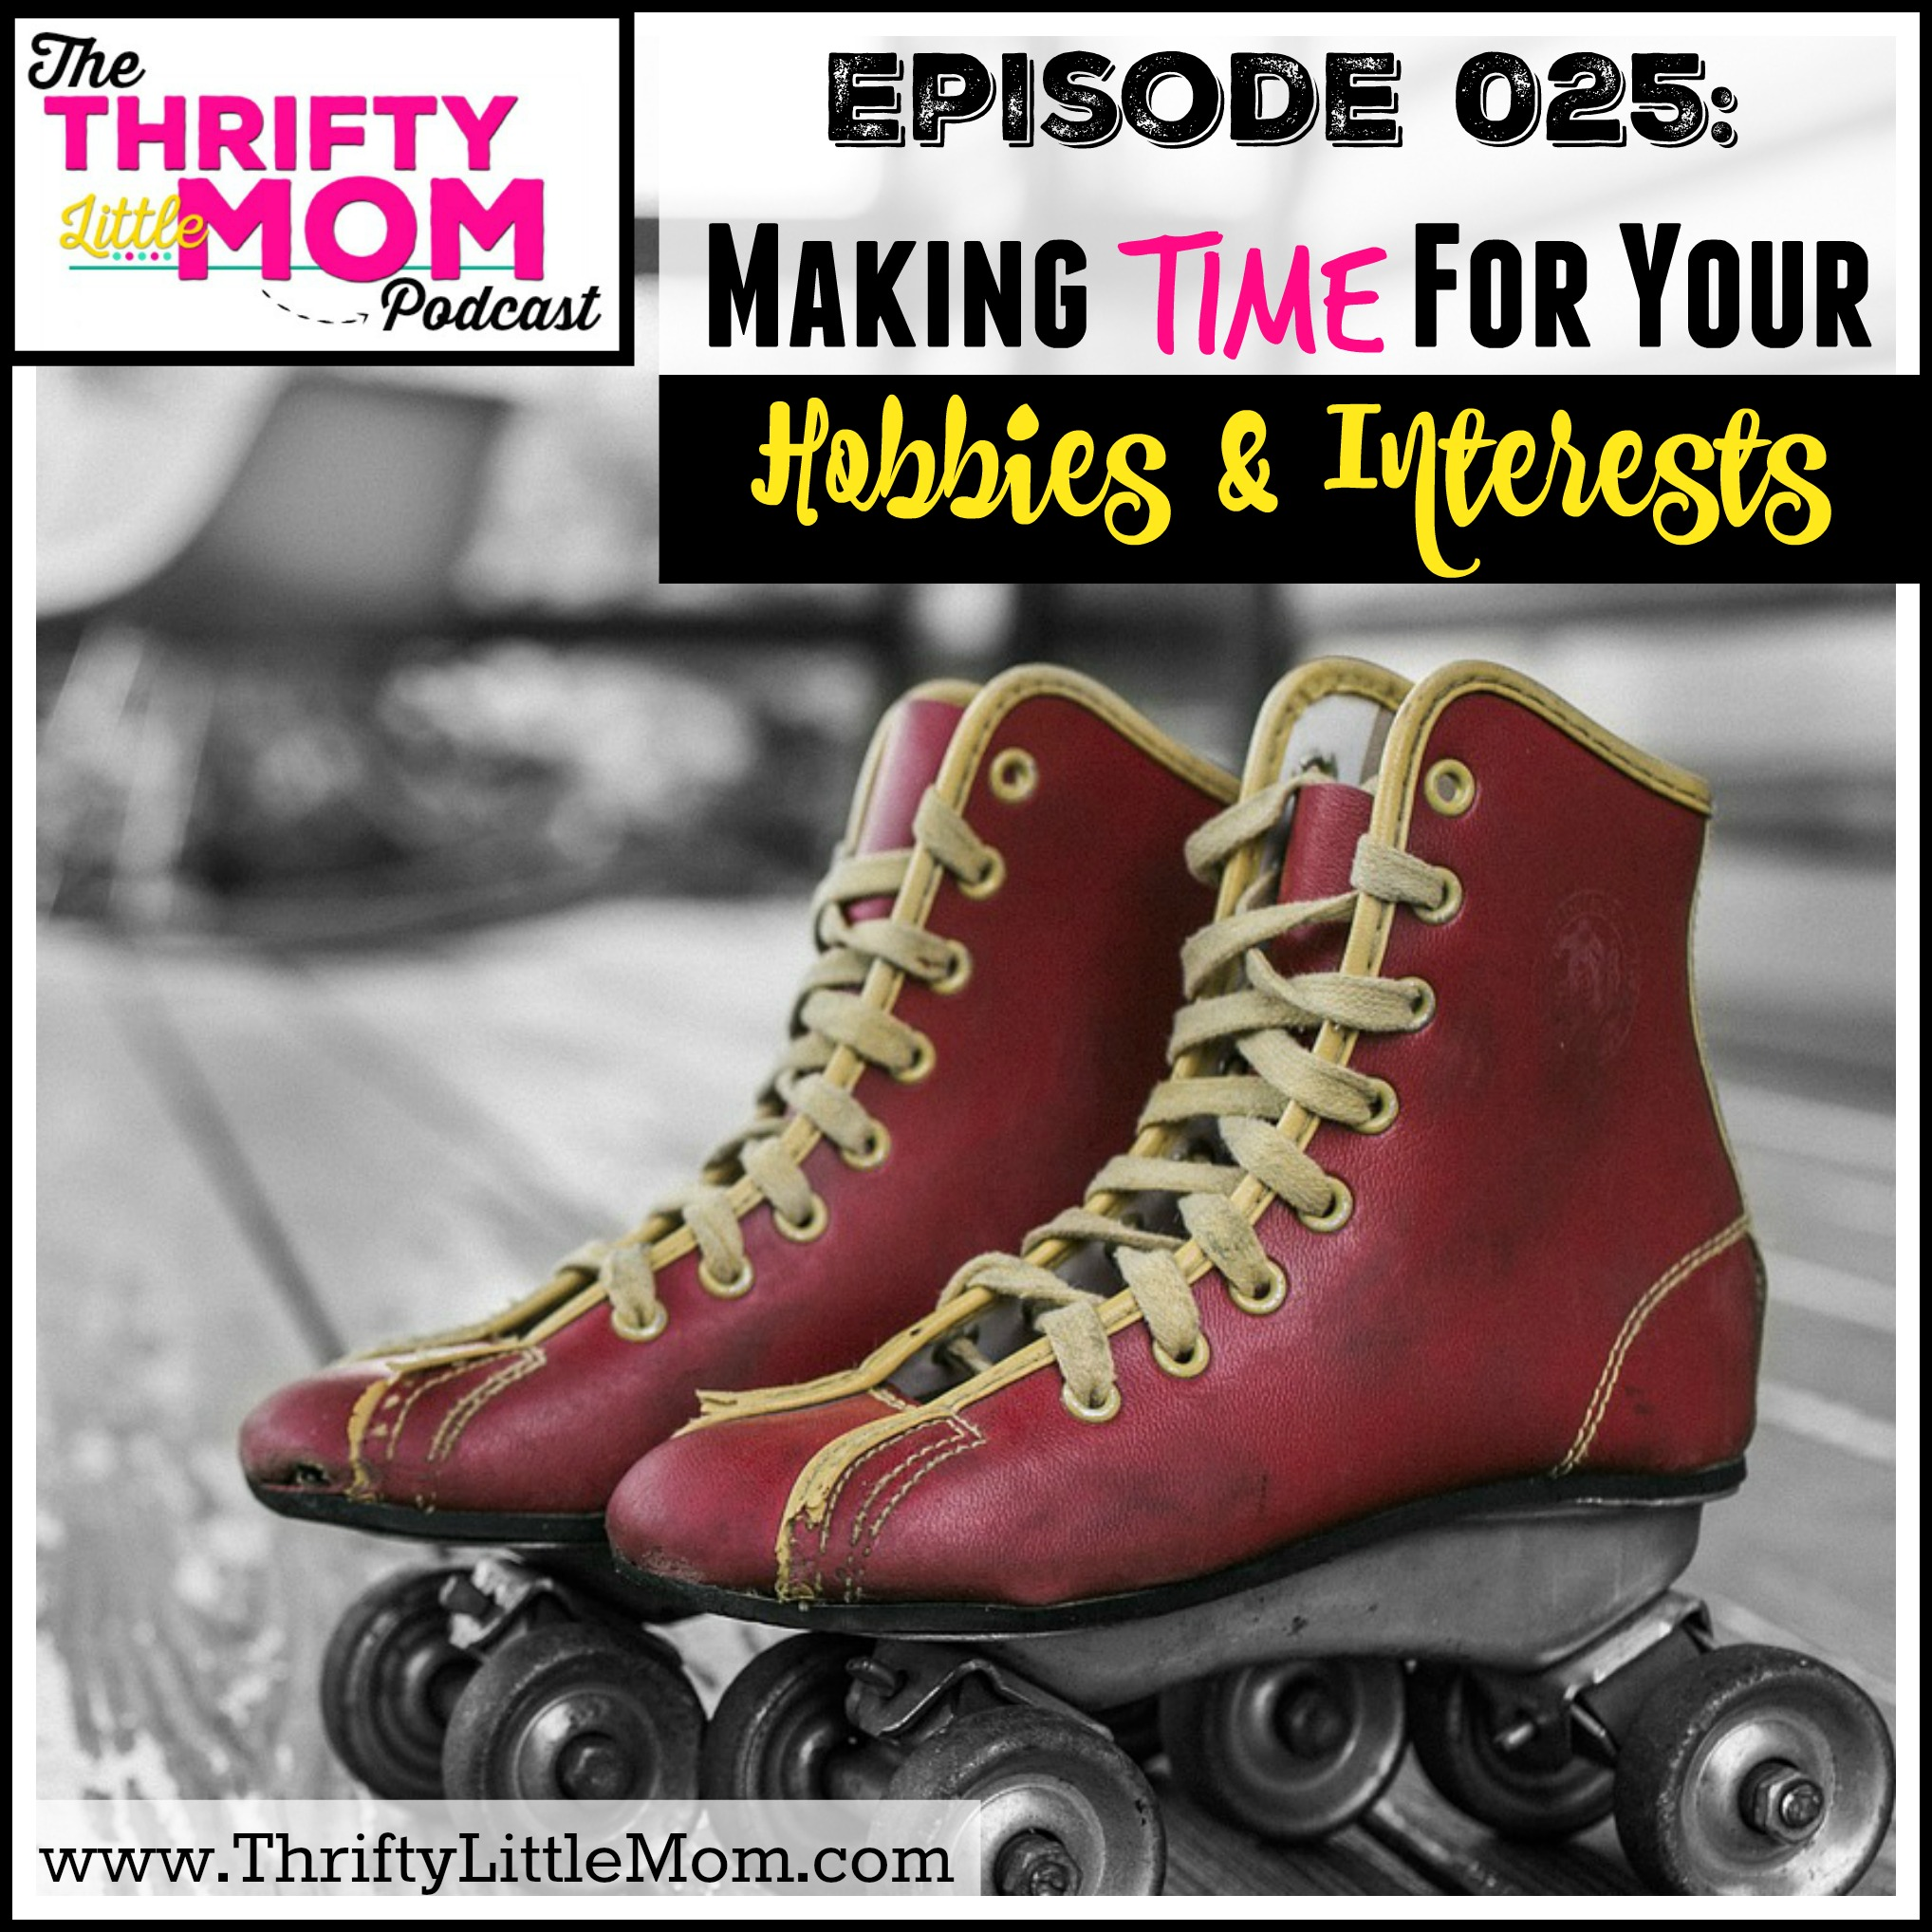 Making Time For Your Hobbies & Interests-TLM Podcast Episode 025